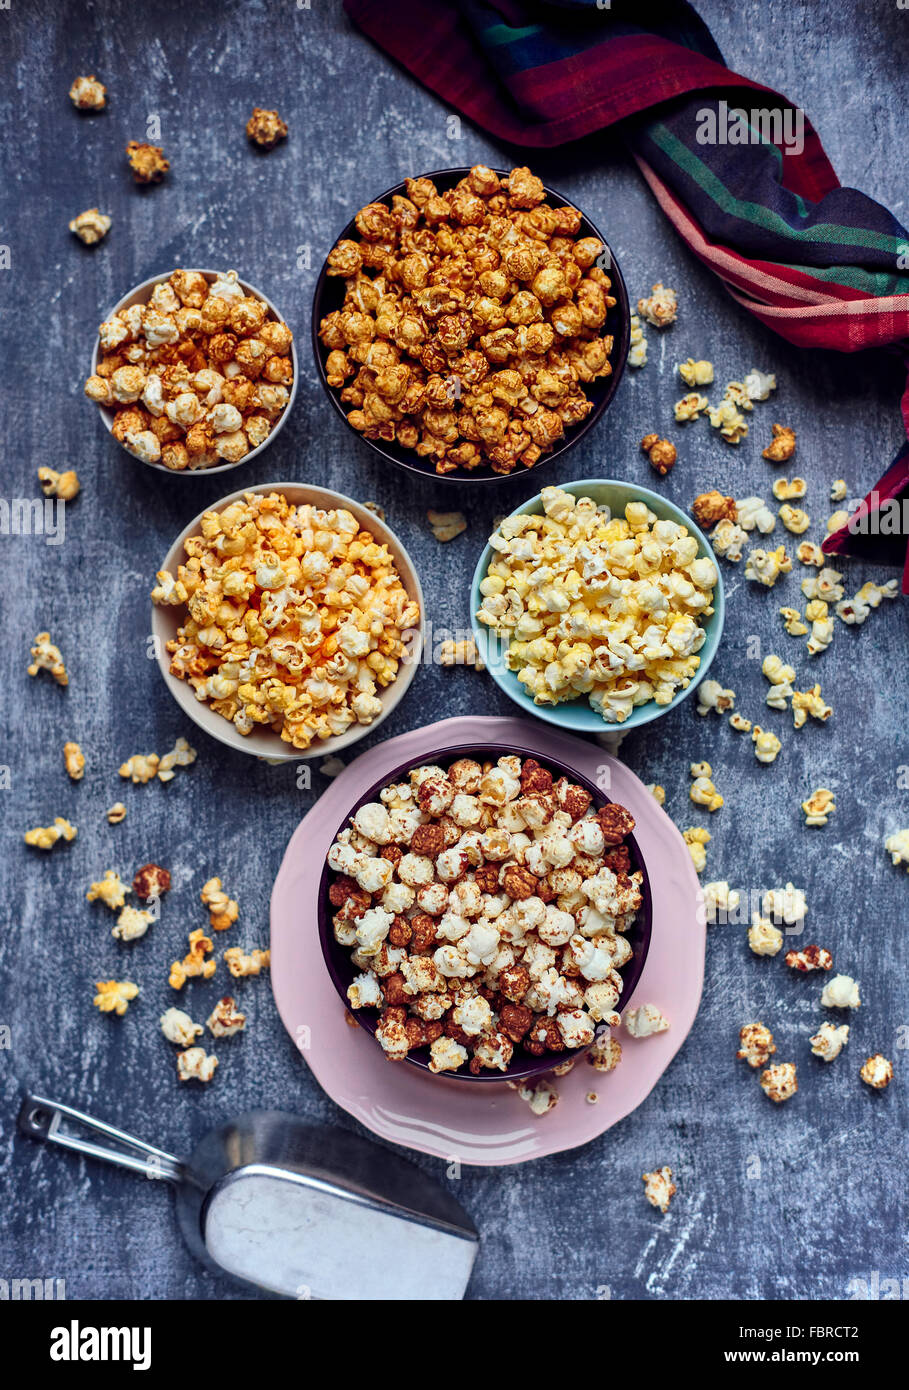 Five bows of various flavored popcorn - Stock Image